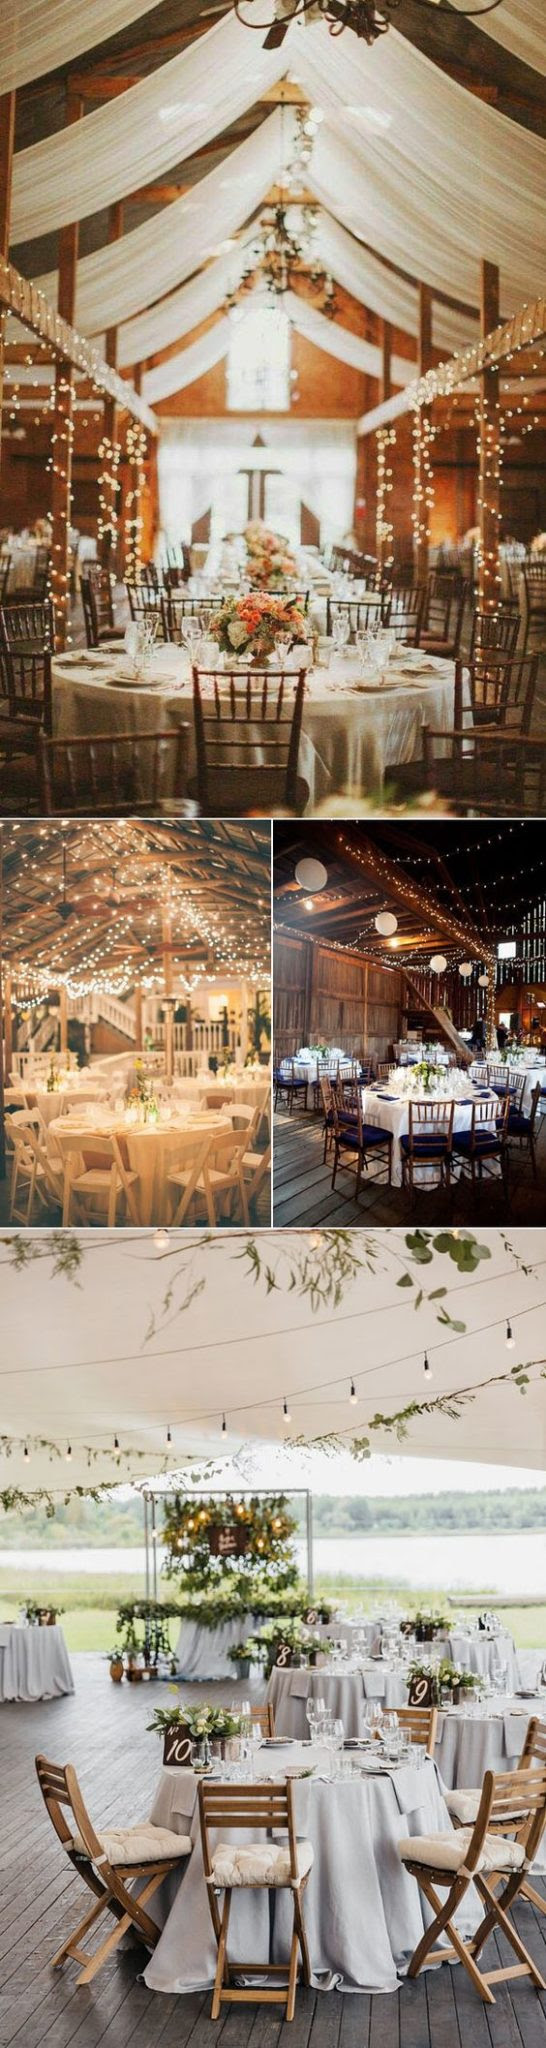 52 Rustic Wedding Decoration Ideas For Creating A Rustic Style Wedding Trendy Wedding Ideas Blog